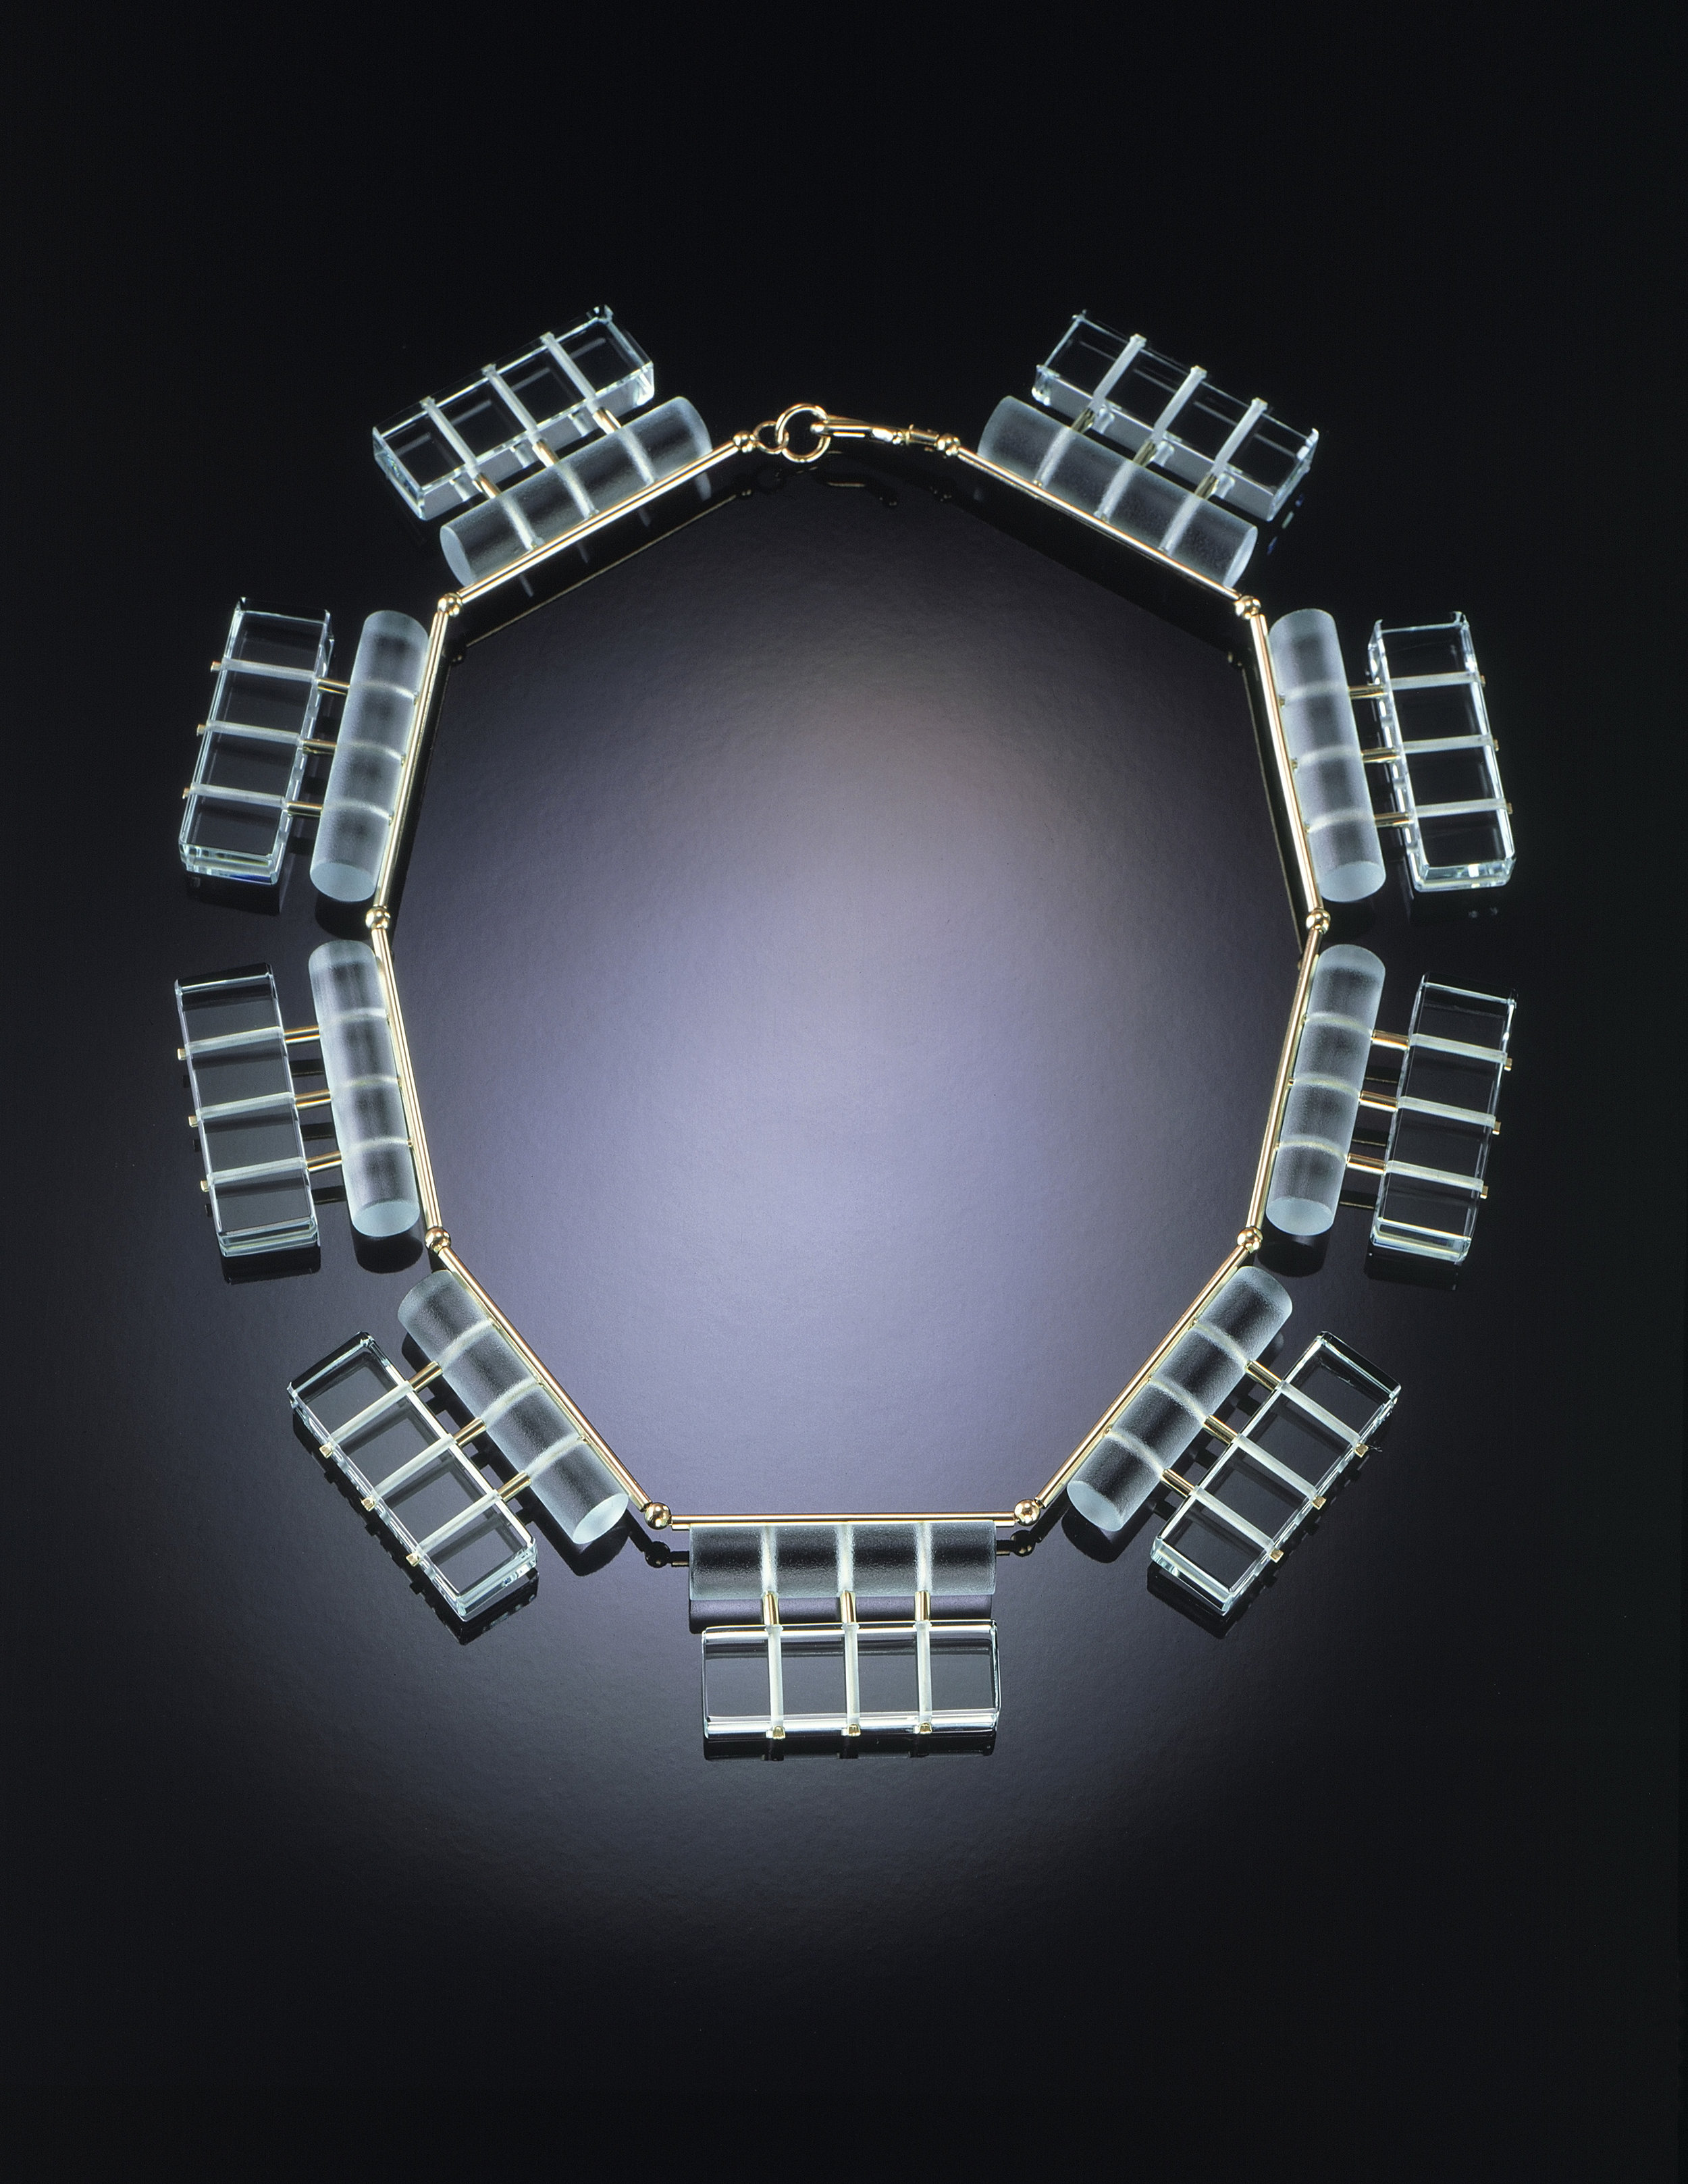 "Linda MacNeil (American, born 1954). Necklace No. 4  from ""Lucent Lines"" series, 1984. Plate glass and 14k yellow gold; 20 1/2 x 7/8 x 1/4 in. Collection of Joan and Jay Ochroch. Photo by Susie Cushner."